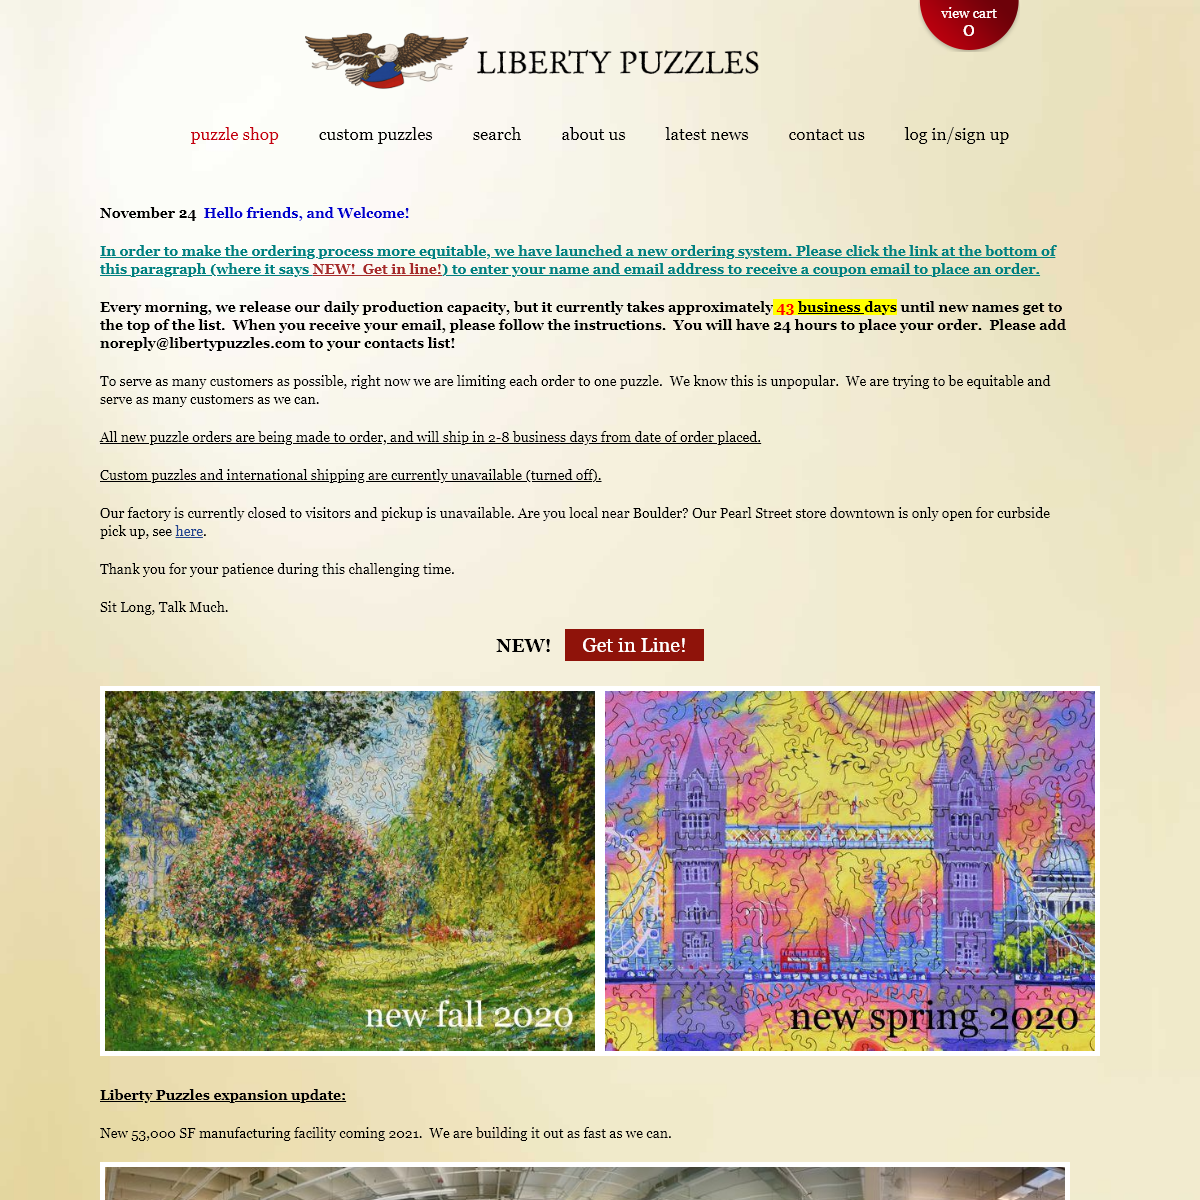 Liberty Puzzles - Wooden Jigsaw Puzzles - Custom Puzzles - Made in the USA